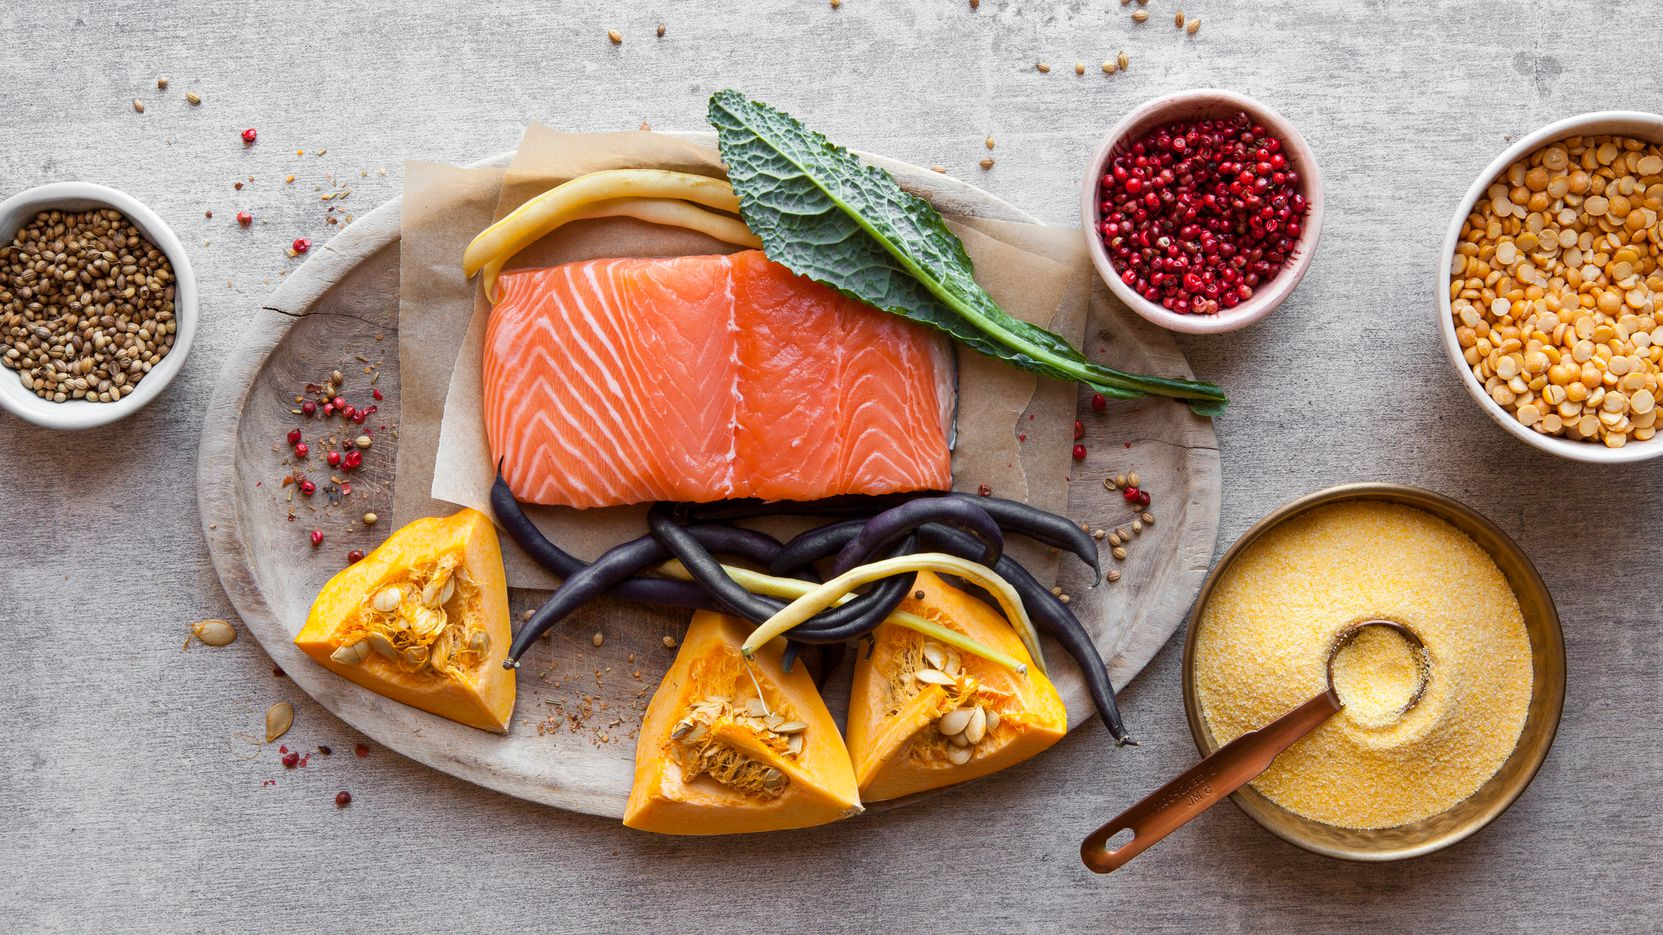 What Can I Eat To Prevent Colon Cancer